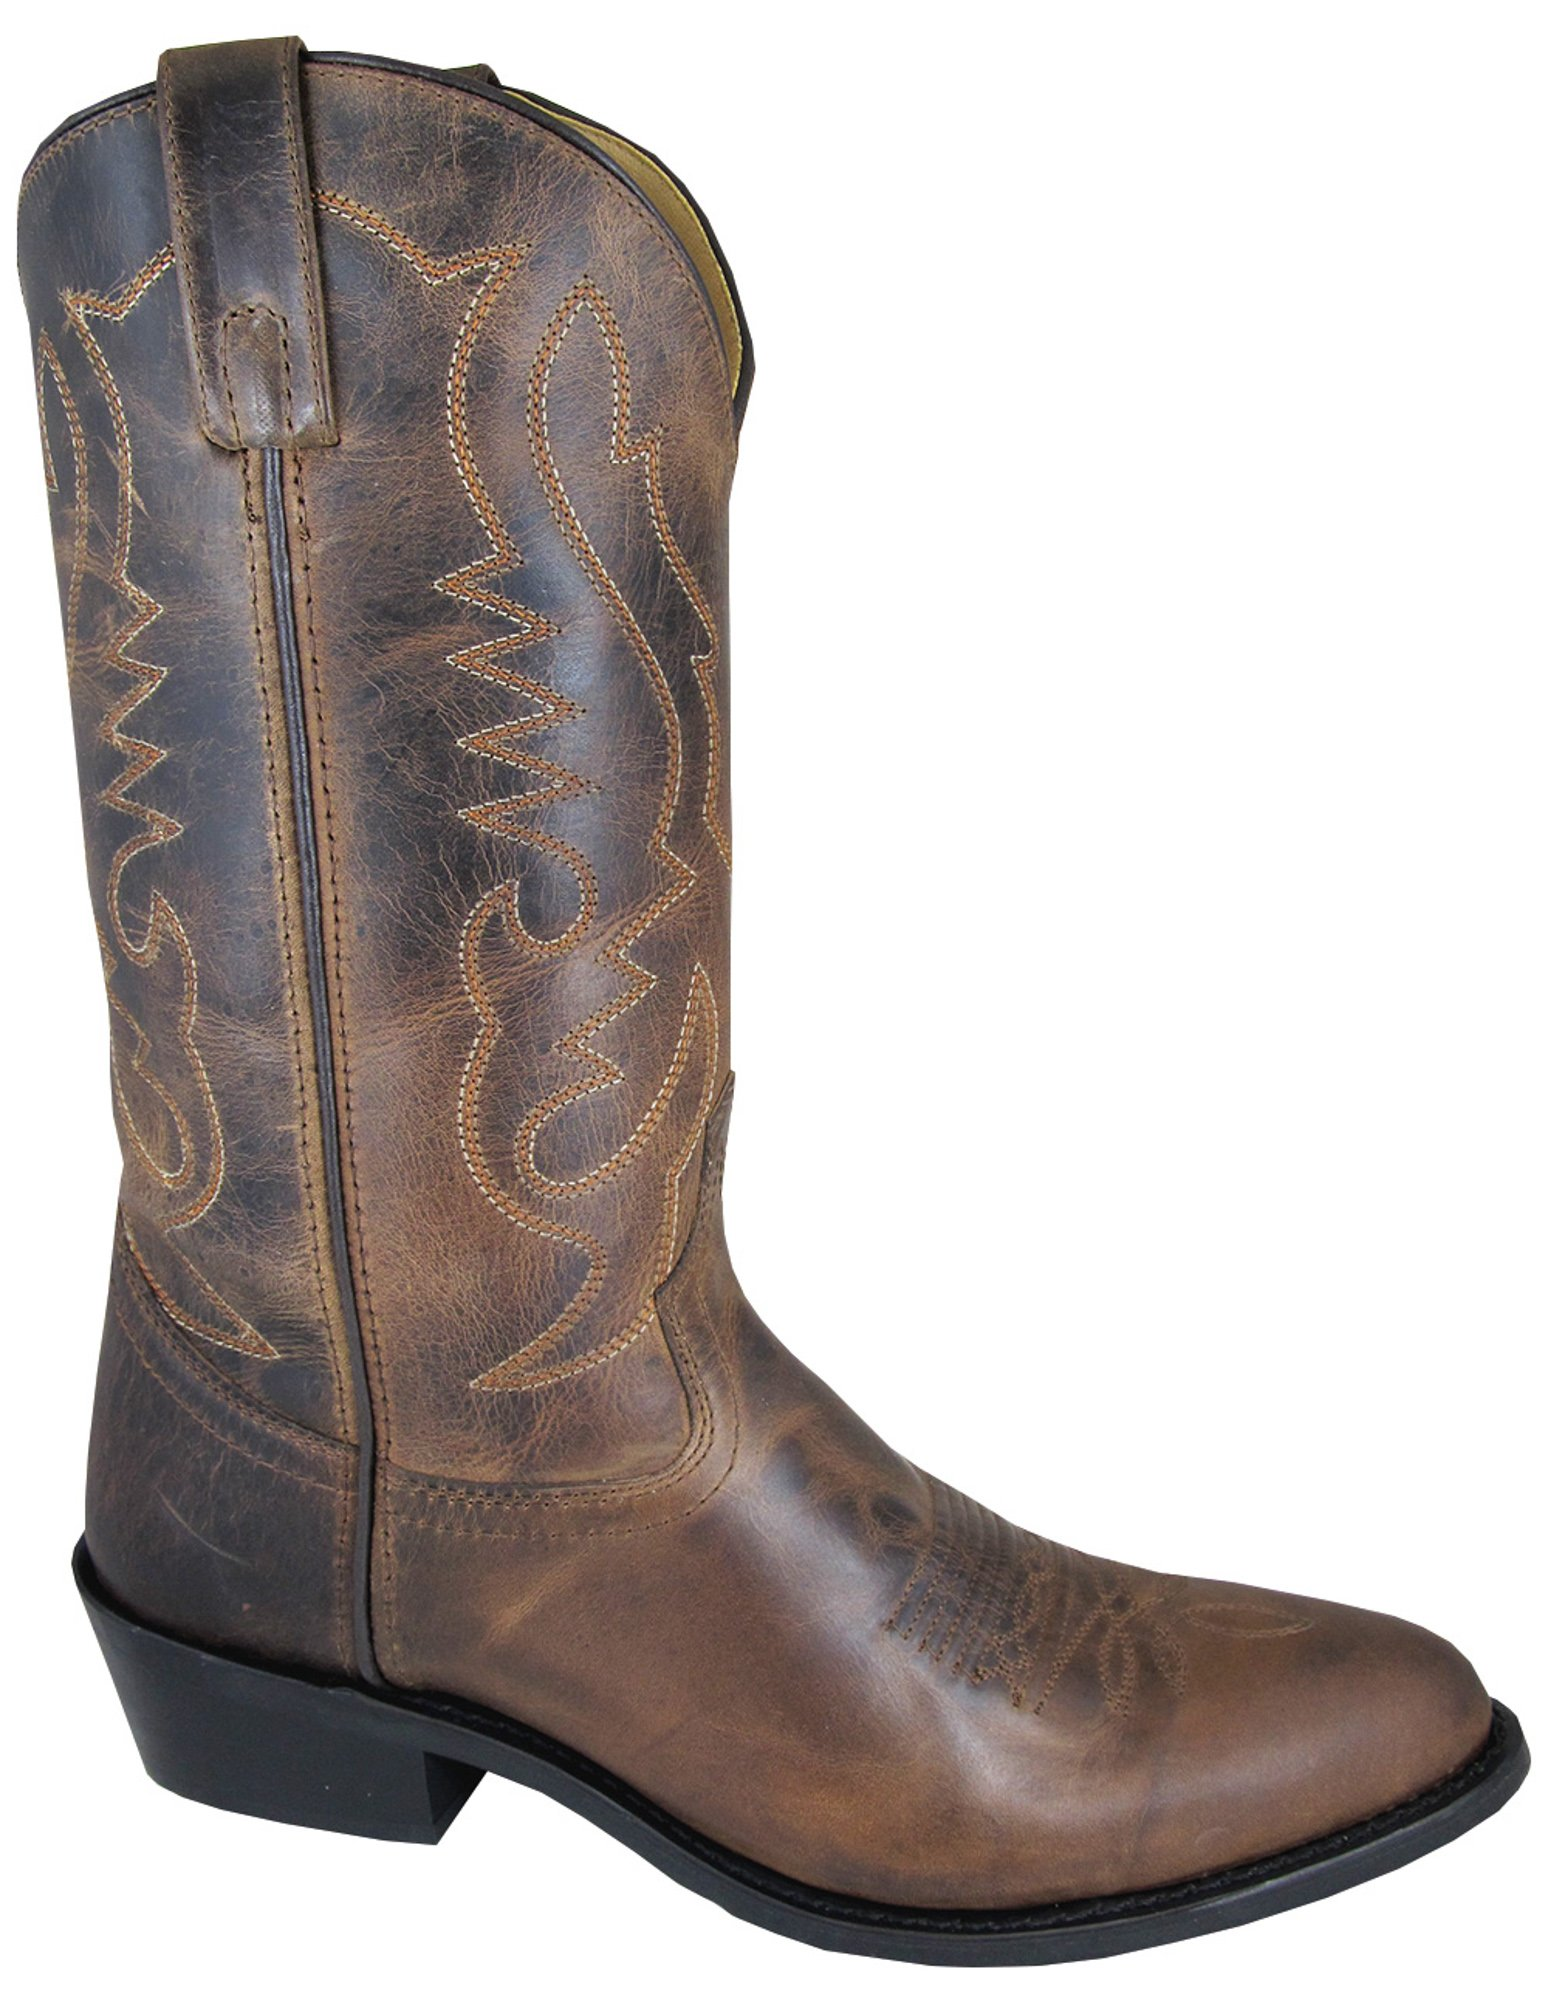 Smoky Mountain Men's Denver Cowboy Boot Round Toe Brown 10 D(M) US by Smoky Mountain